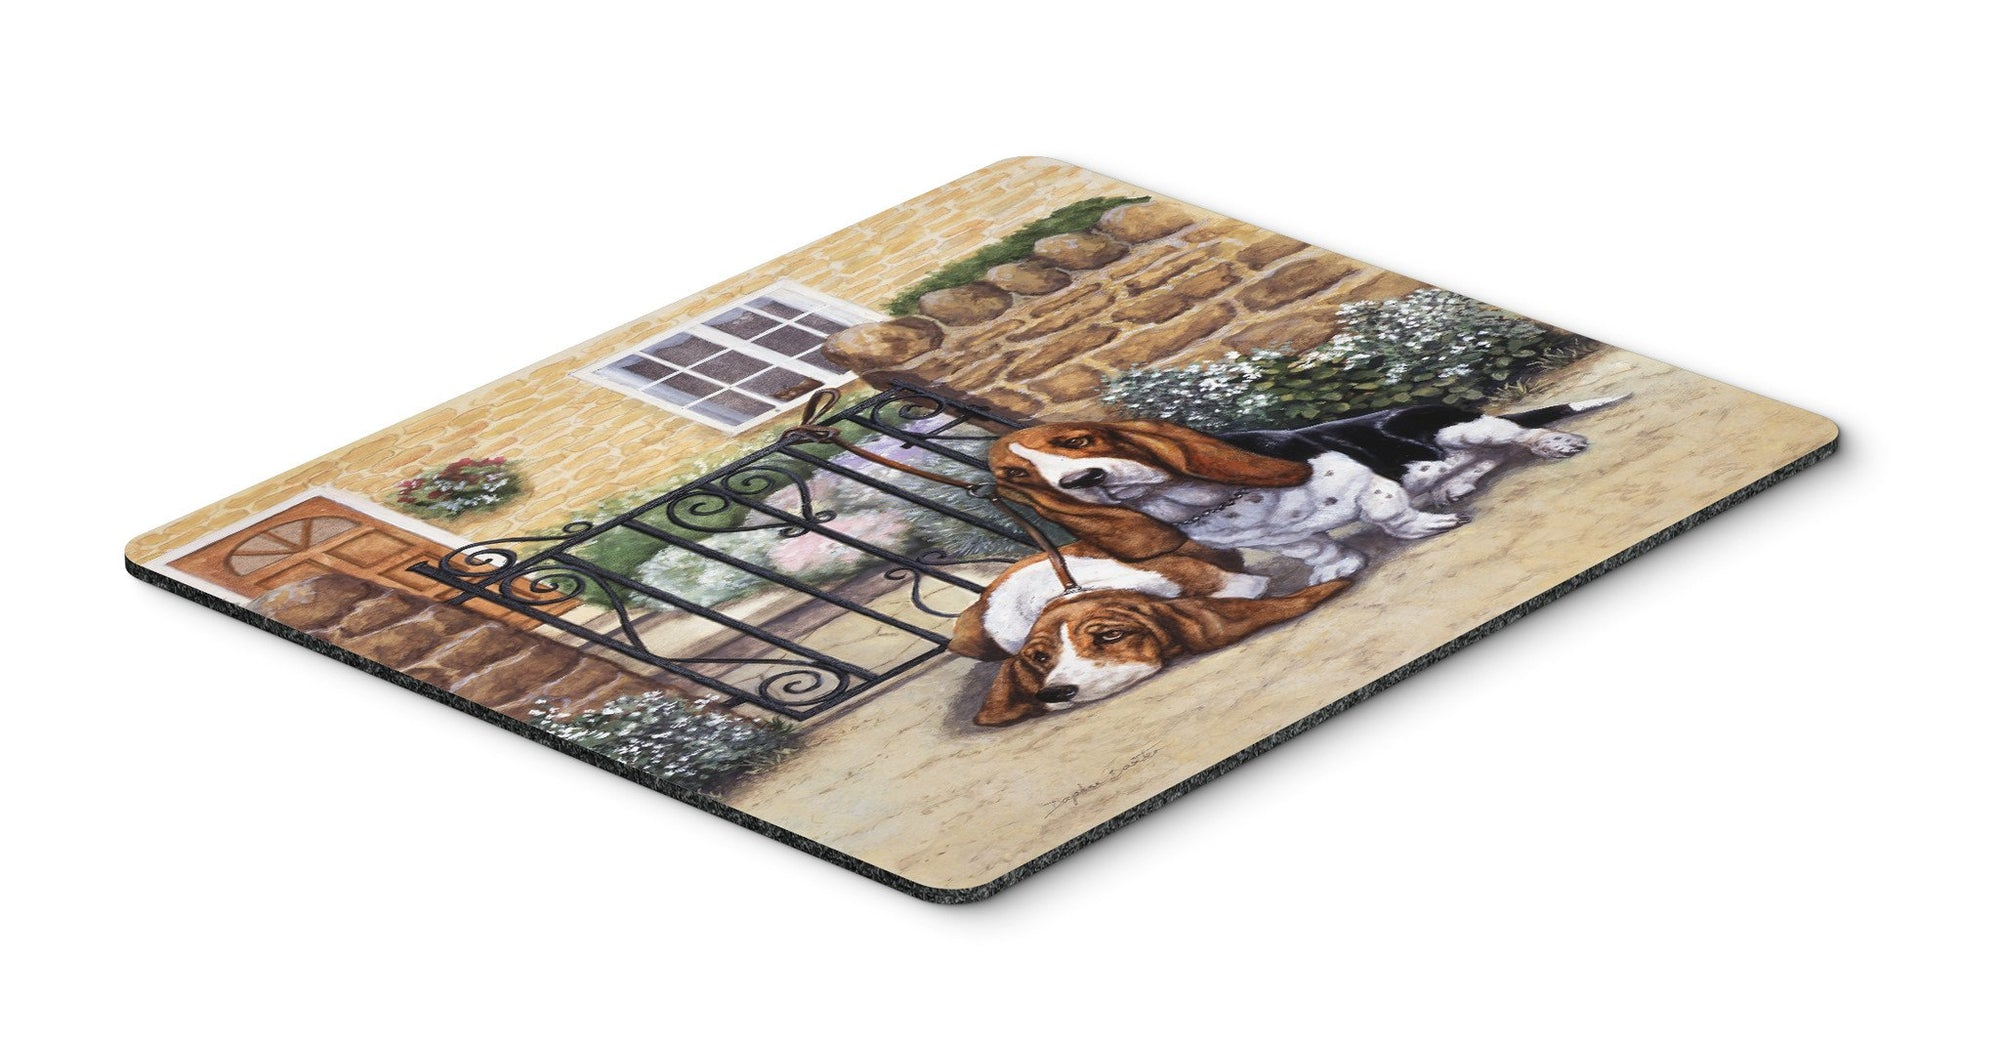 Basset Hound at the gate Mouse Pad, Hot Pad or Trivet BDBA0312MP by Caroline's Treasures